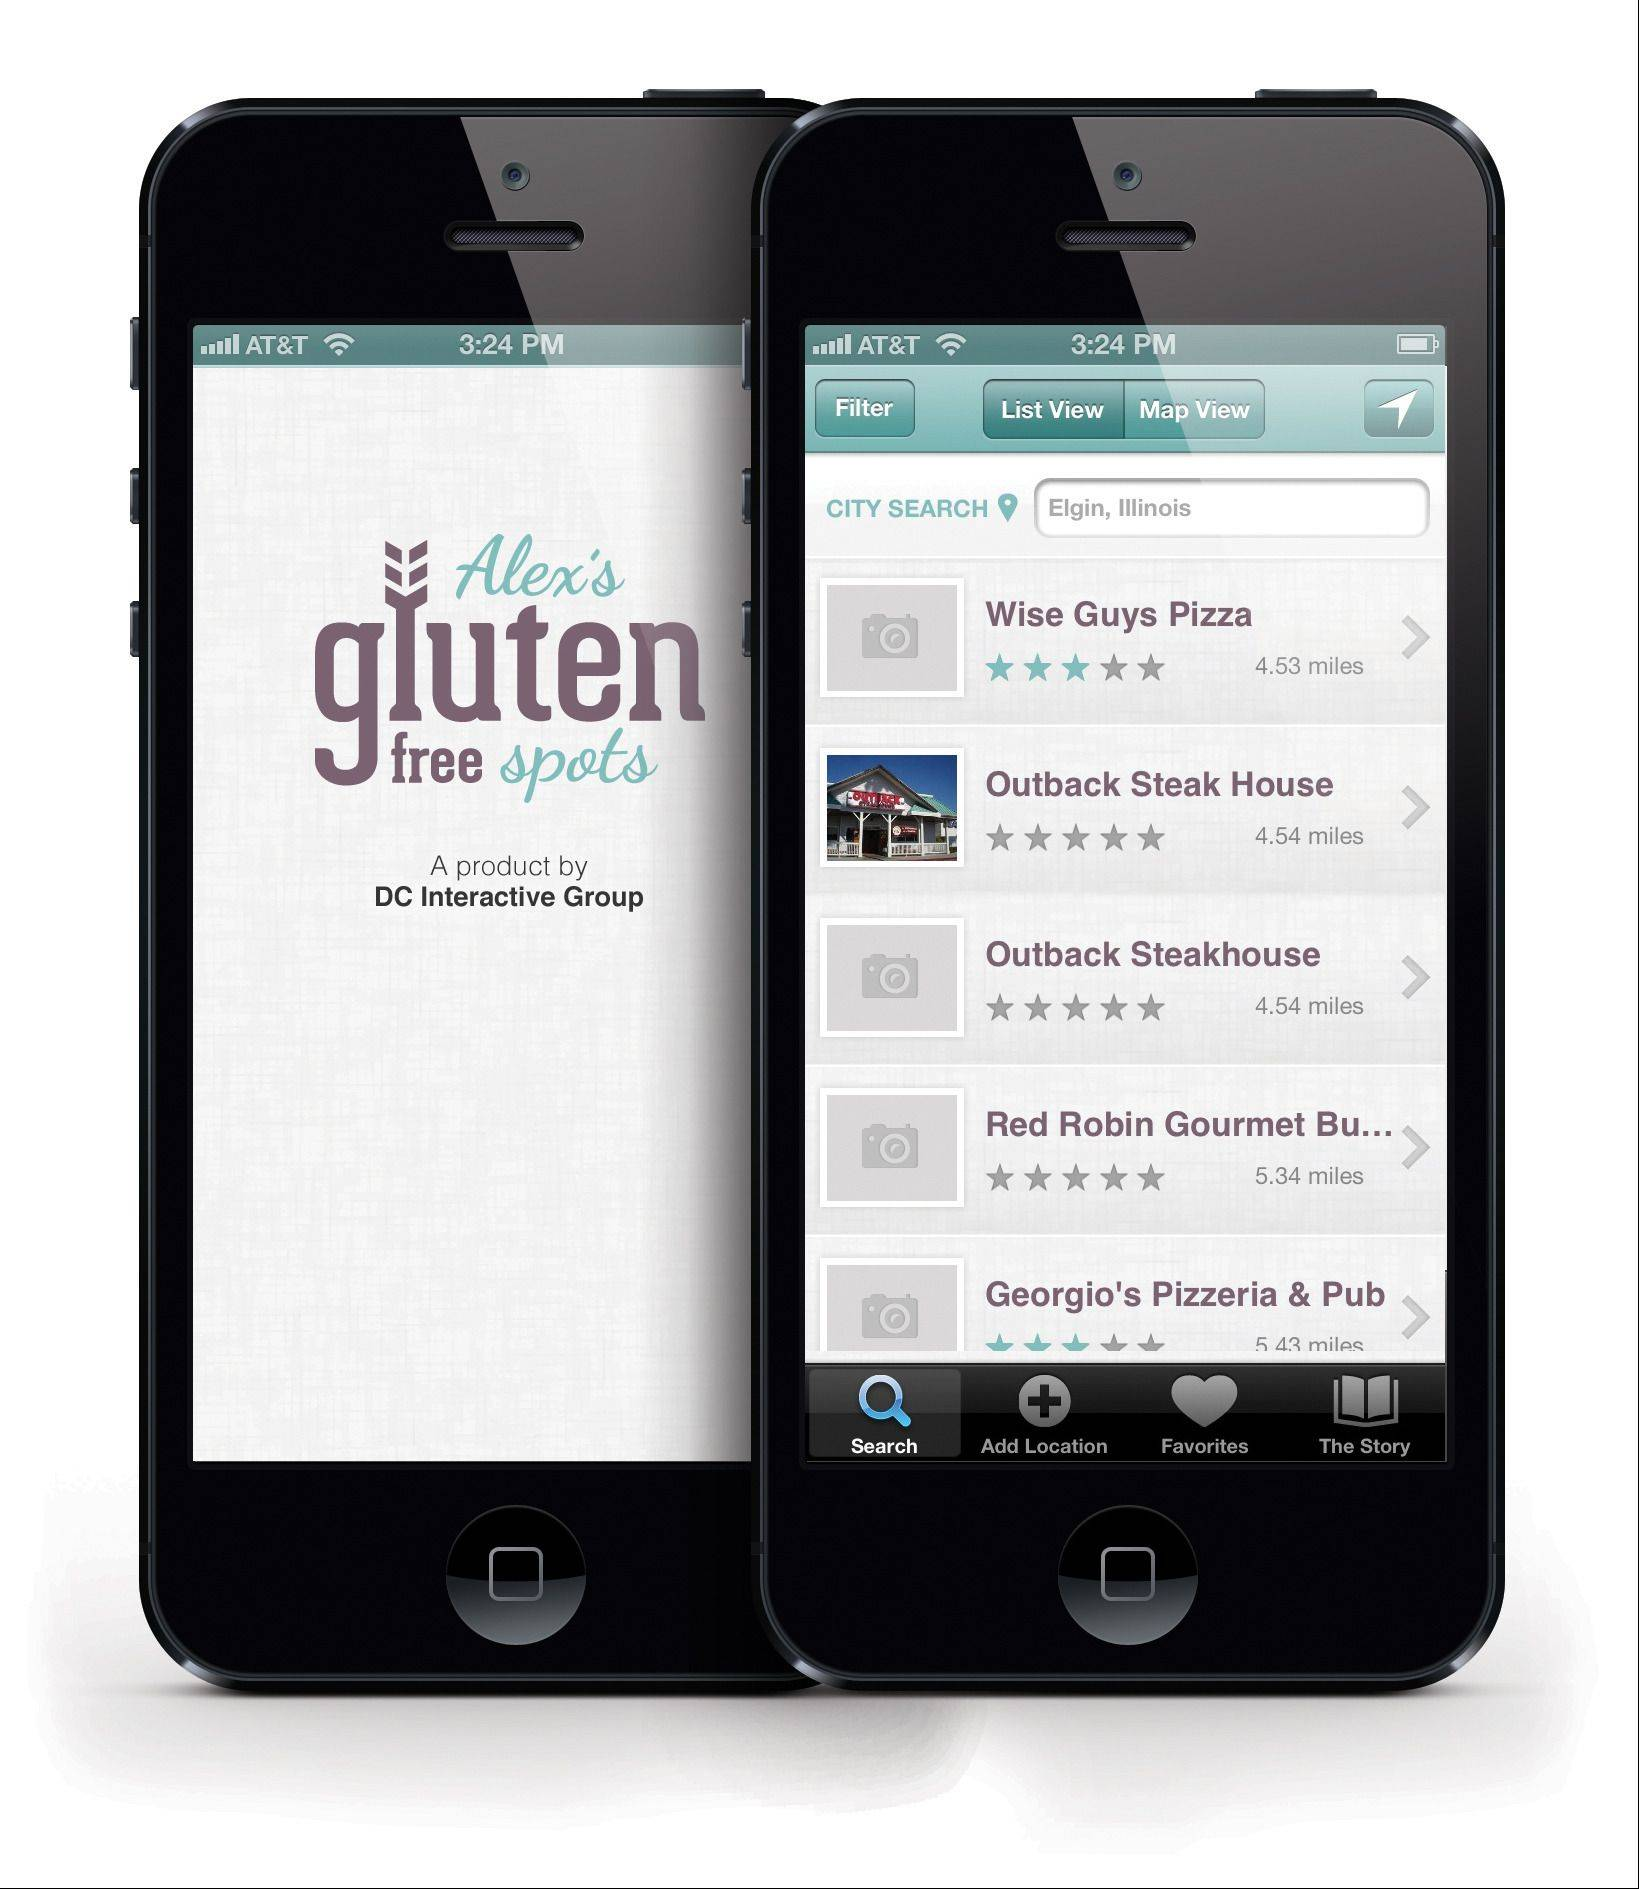 Elgin-based DC Interactive Group, a web design and marketing agency, launched Alex's Gluten Free Spots, a new iPhone app. It was created by the agency's owner, Charles Falls of St. Charles.